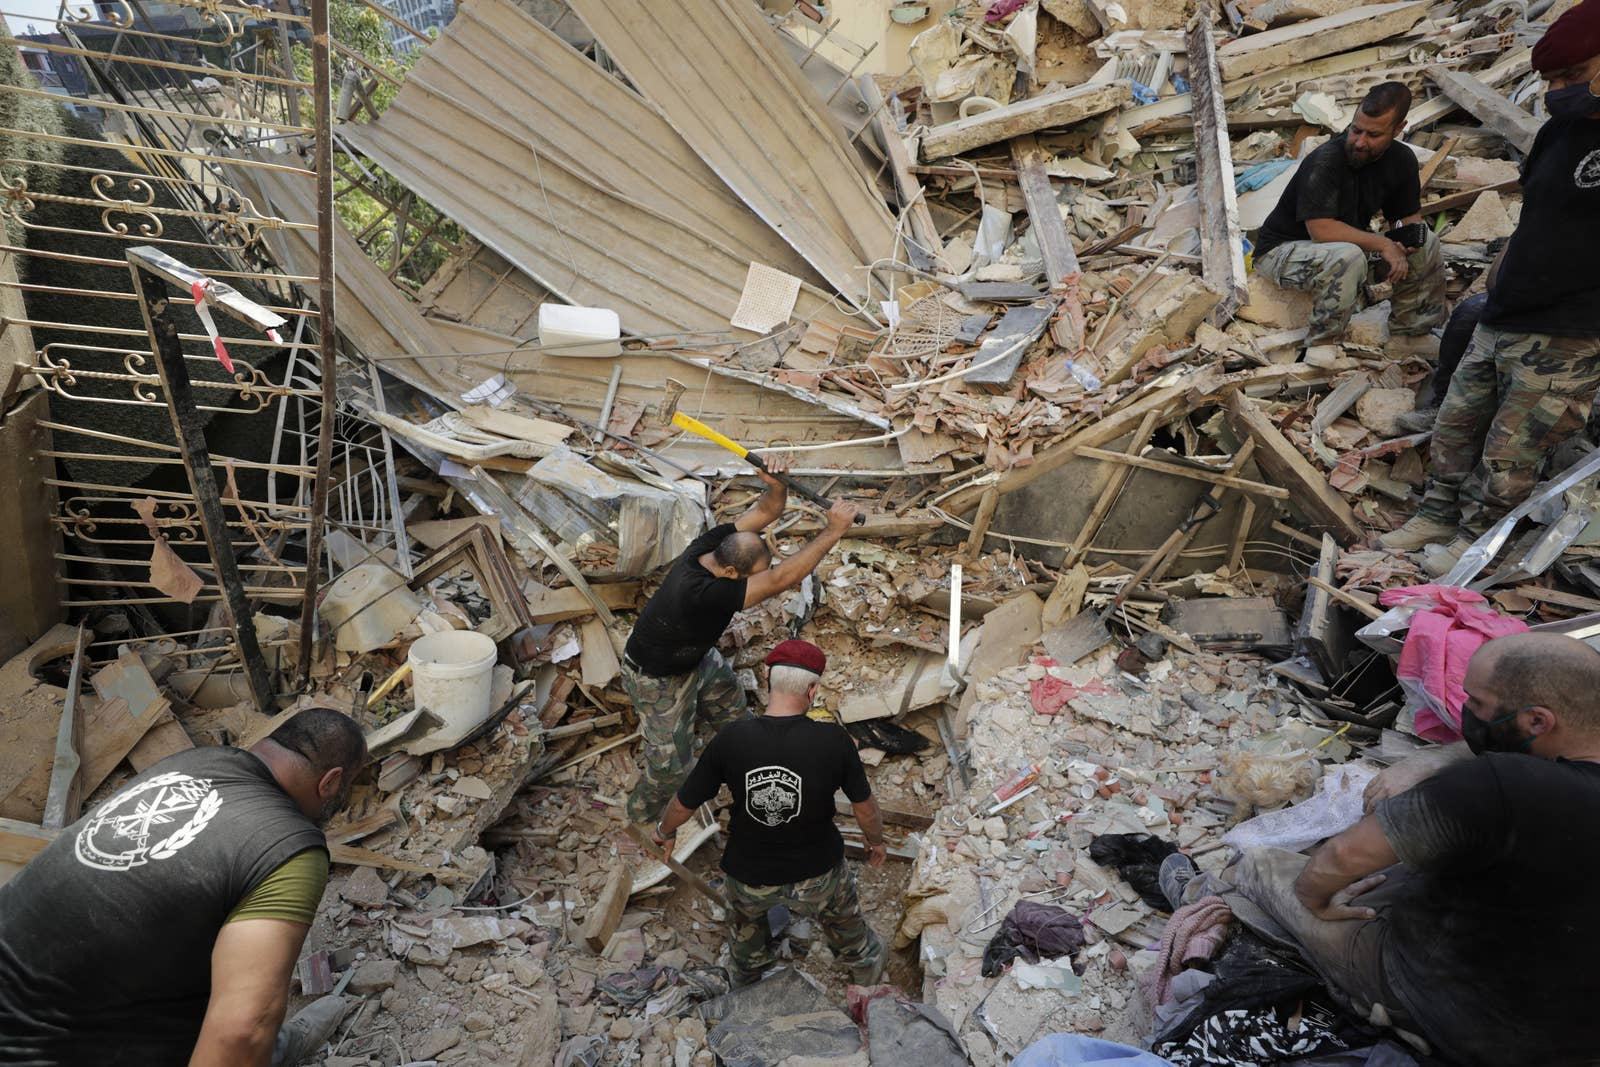 Three men in fatigues and T-shirts dig through a massive pile of rubble